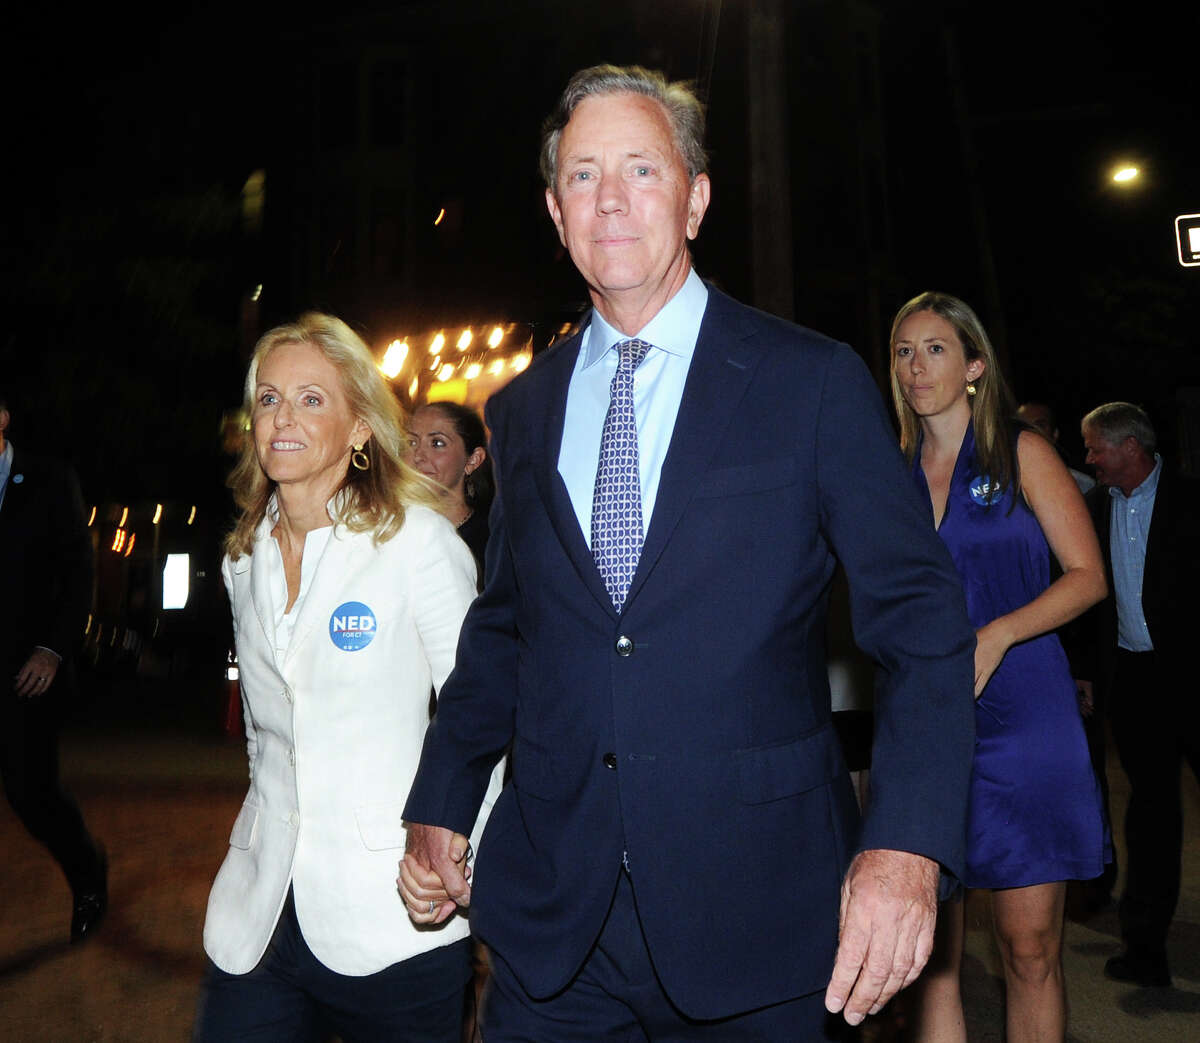 Holding hands with his wife, Annie, left, Ned Lamont, center, the endorsed Democratic candidate for governor of Connecticut walks on Chapel Street after winning the primary election as he headed to his victory reception at the College Street Music Hall, New Haven Conn., Tuesday, Aug. 14, 2018.